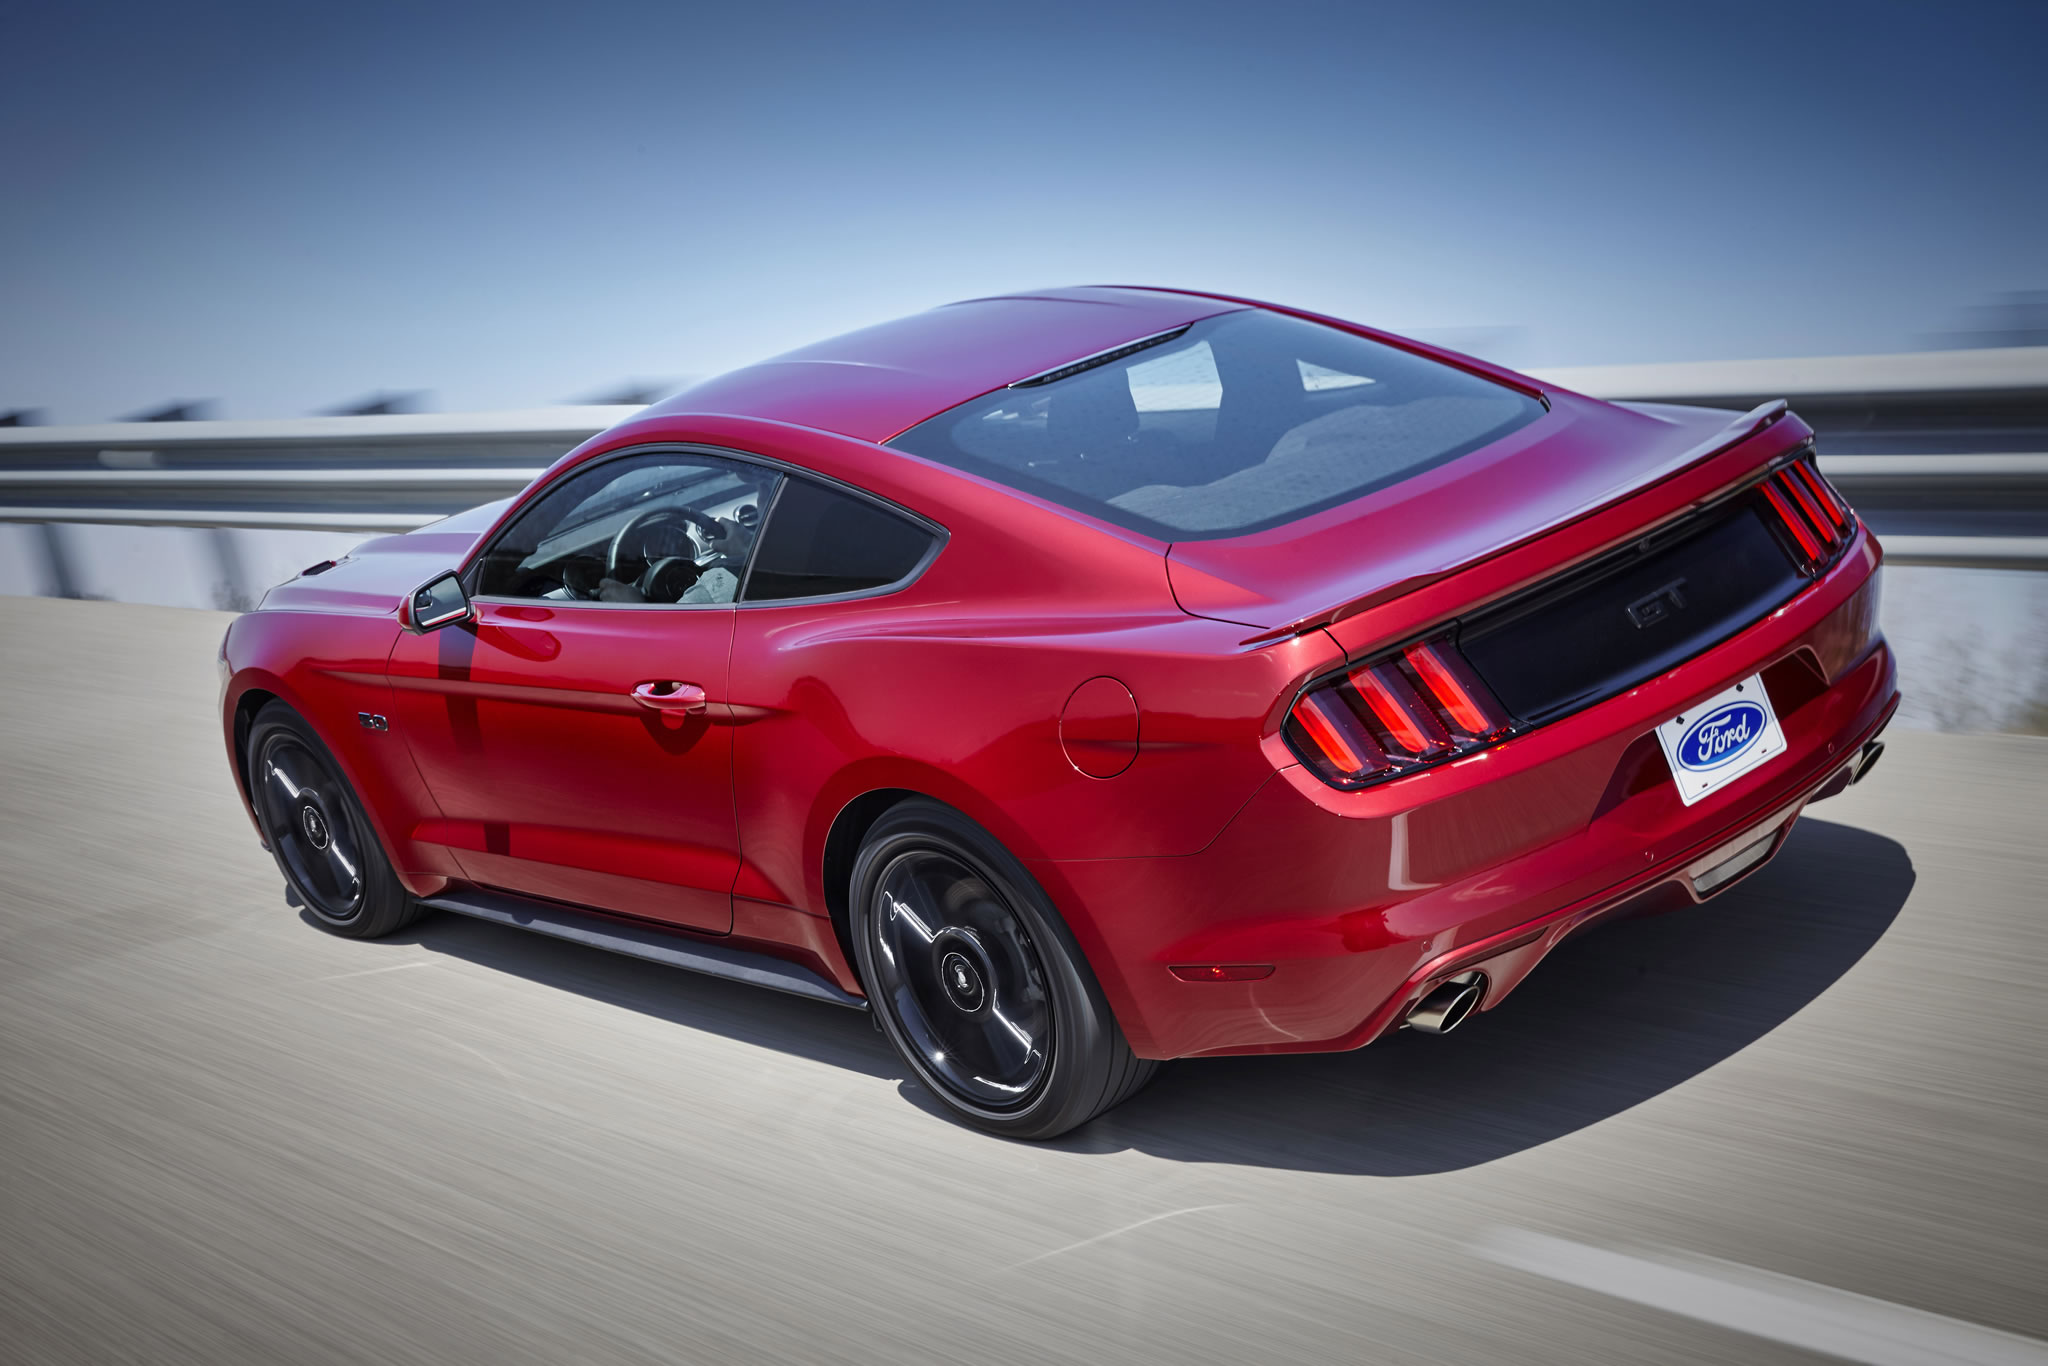 2016 ford mustang gt rear photo ruby red paint black accent package size 2048 x 1366 nr 5. Black Bedroom Furniture Sets. Home Design Ideas